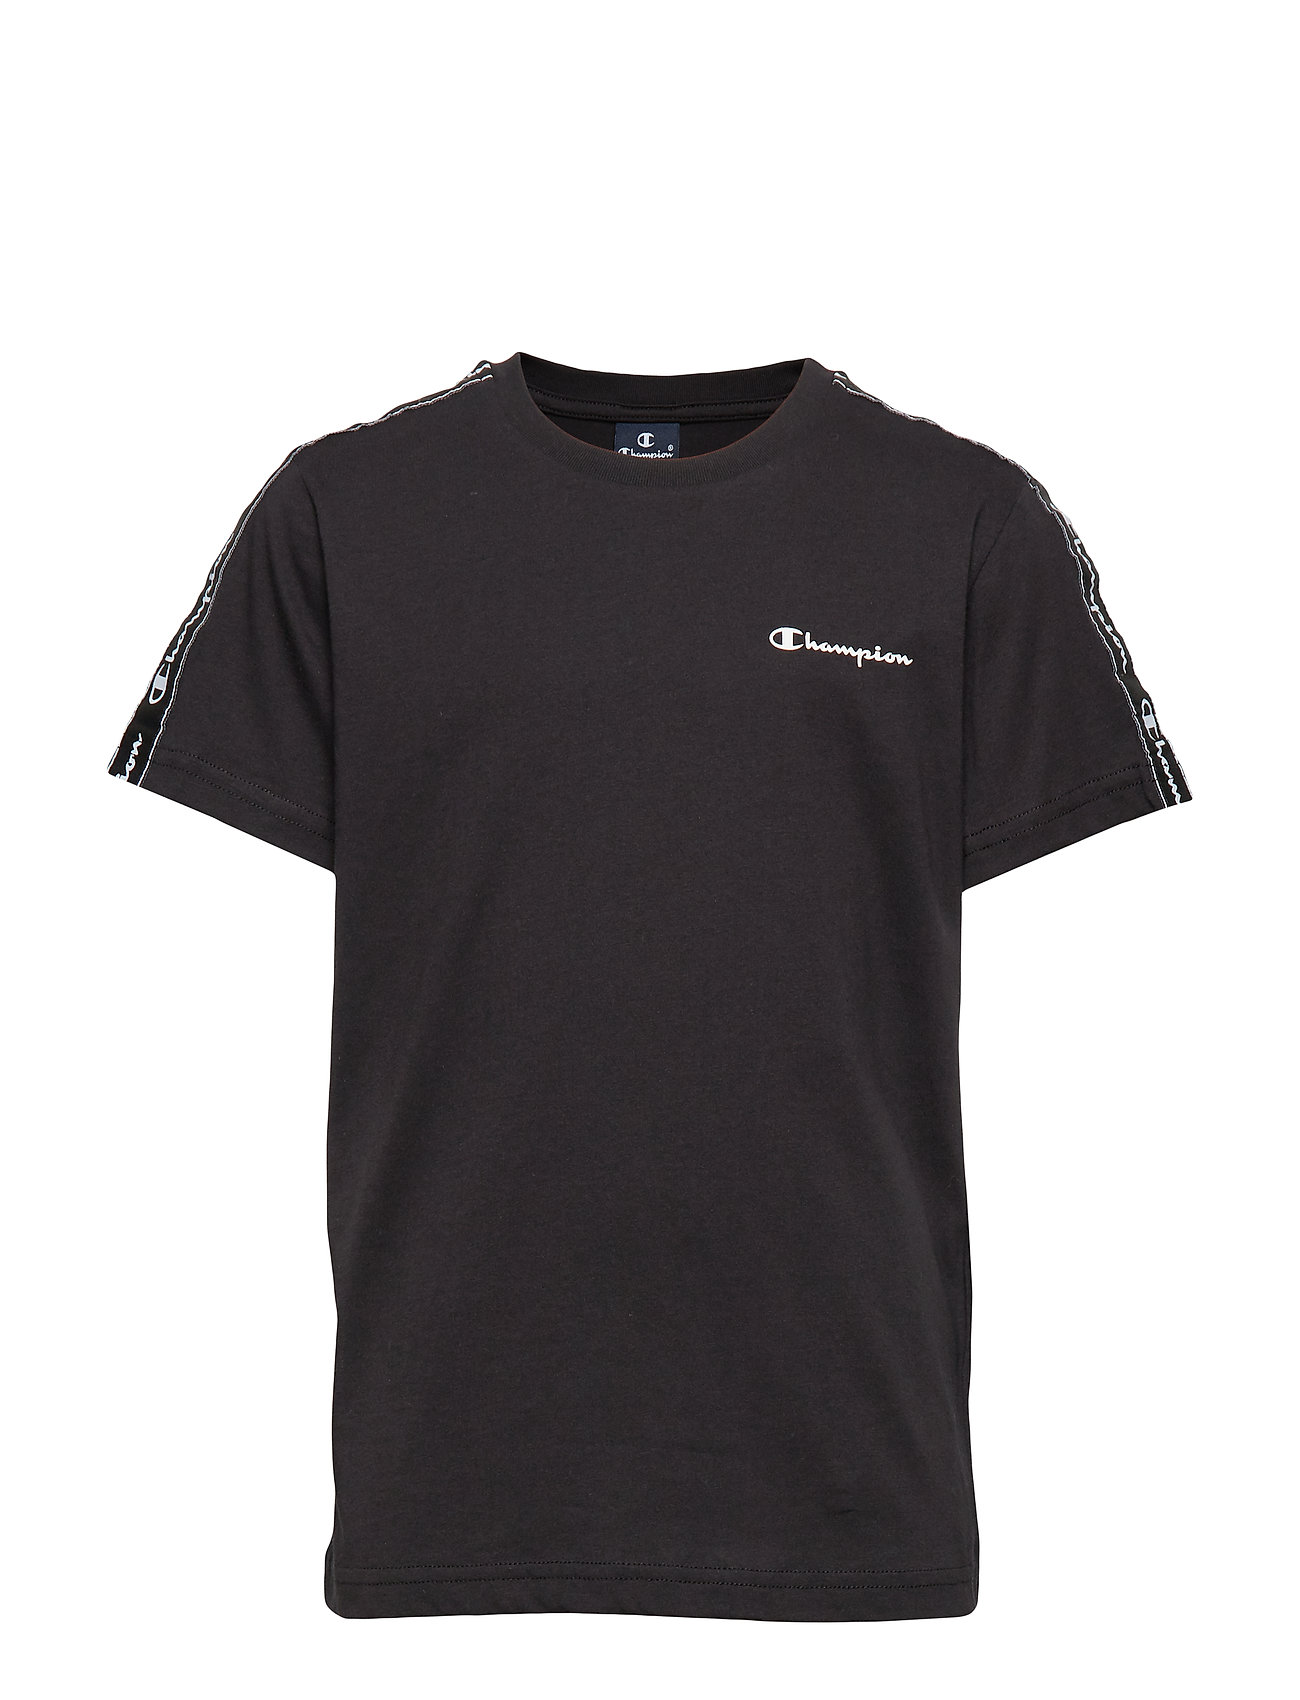 Champion Crewneck T-Shirt - BLACK BEAUTY